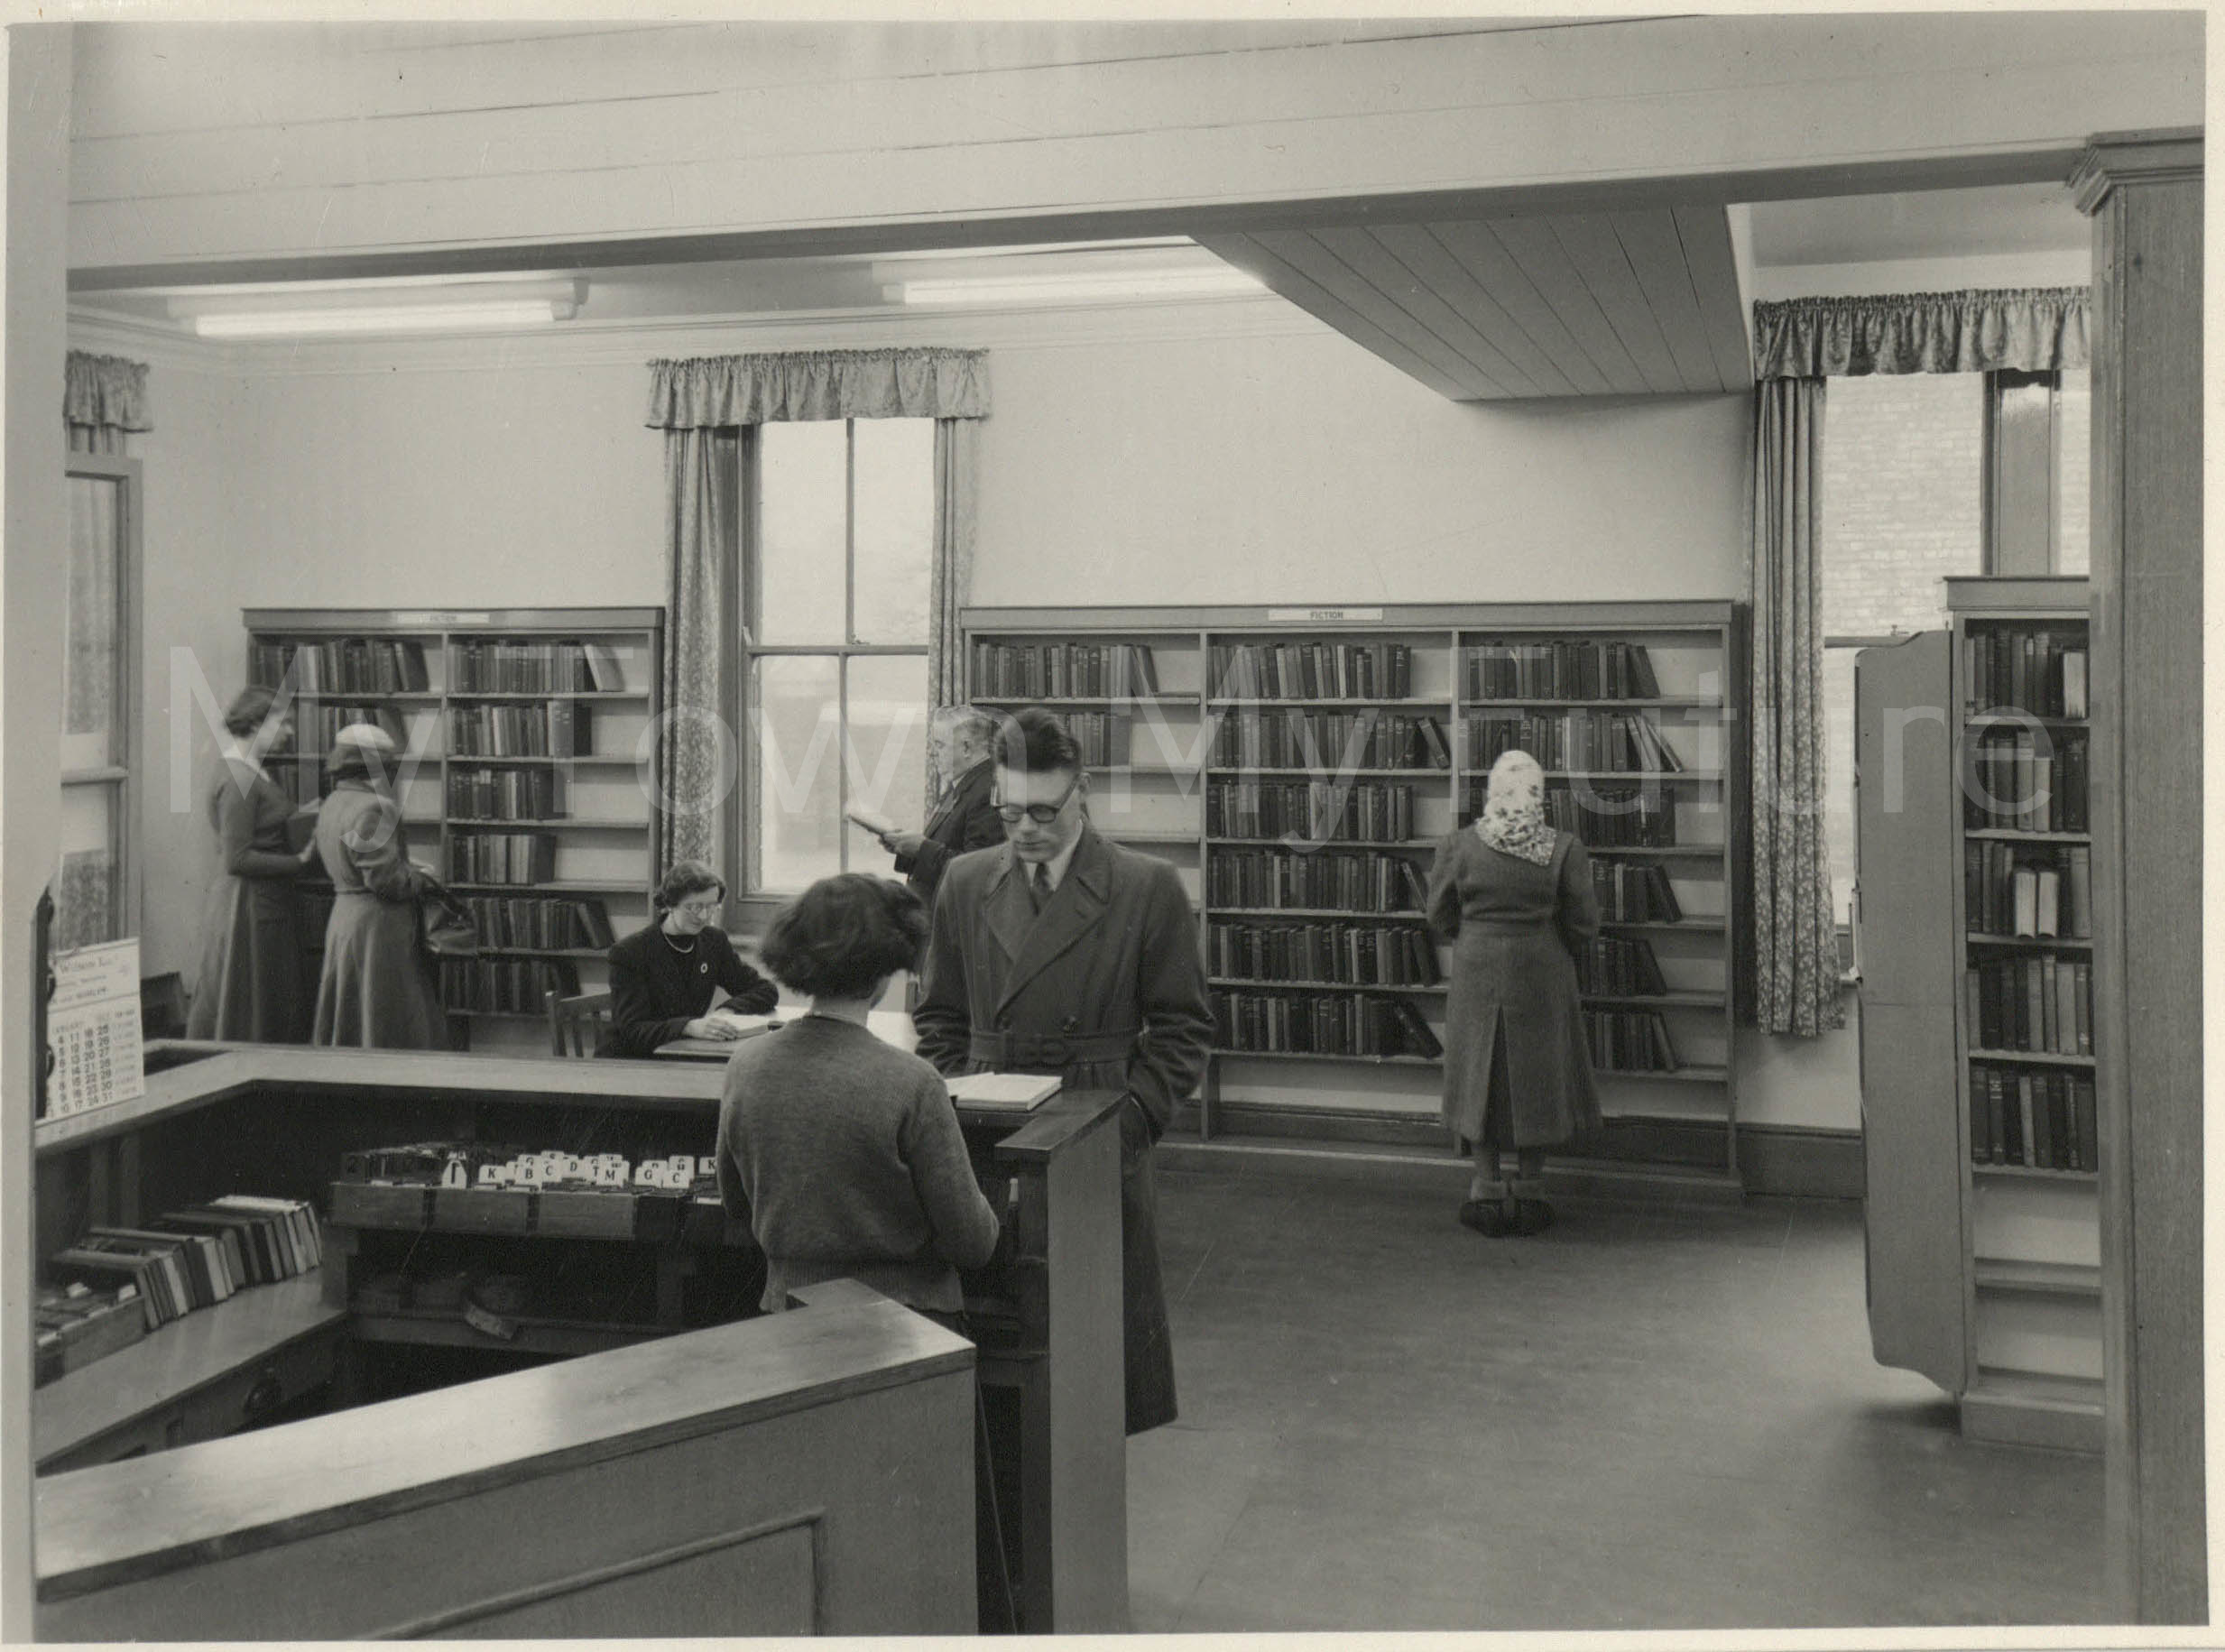 North Ormesby Library Re-Opening, 1953, Mather's Photographers, 140 Linthorpe Road, Middlesbrough